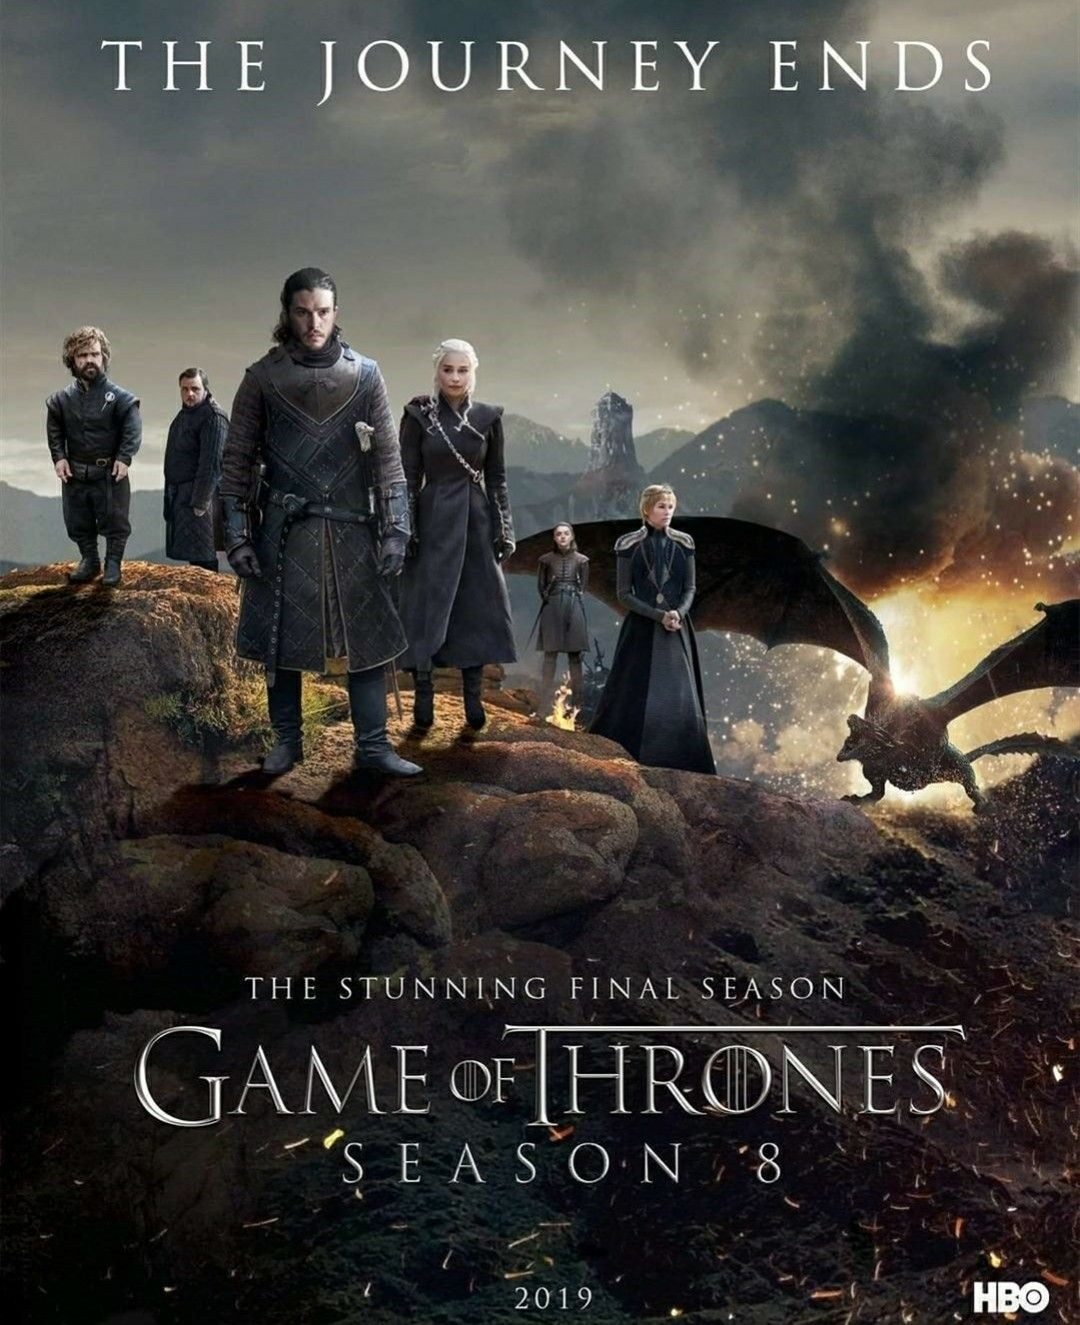 the journey ends game of thrones season 8